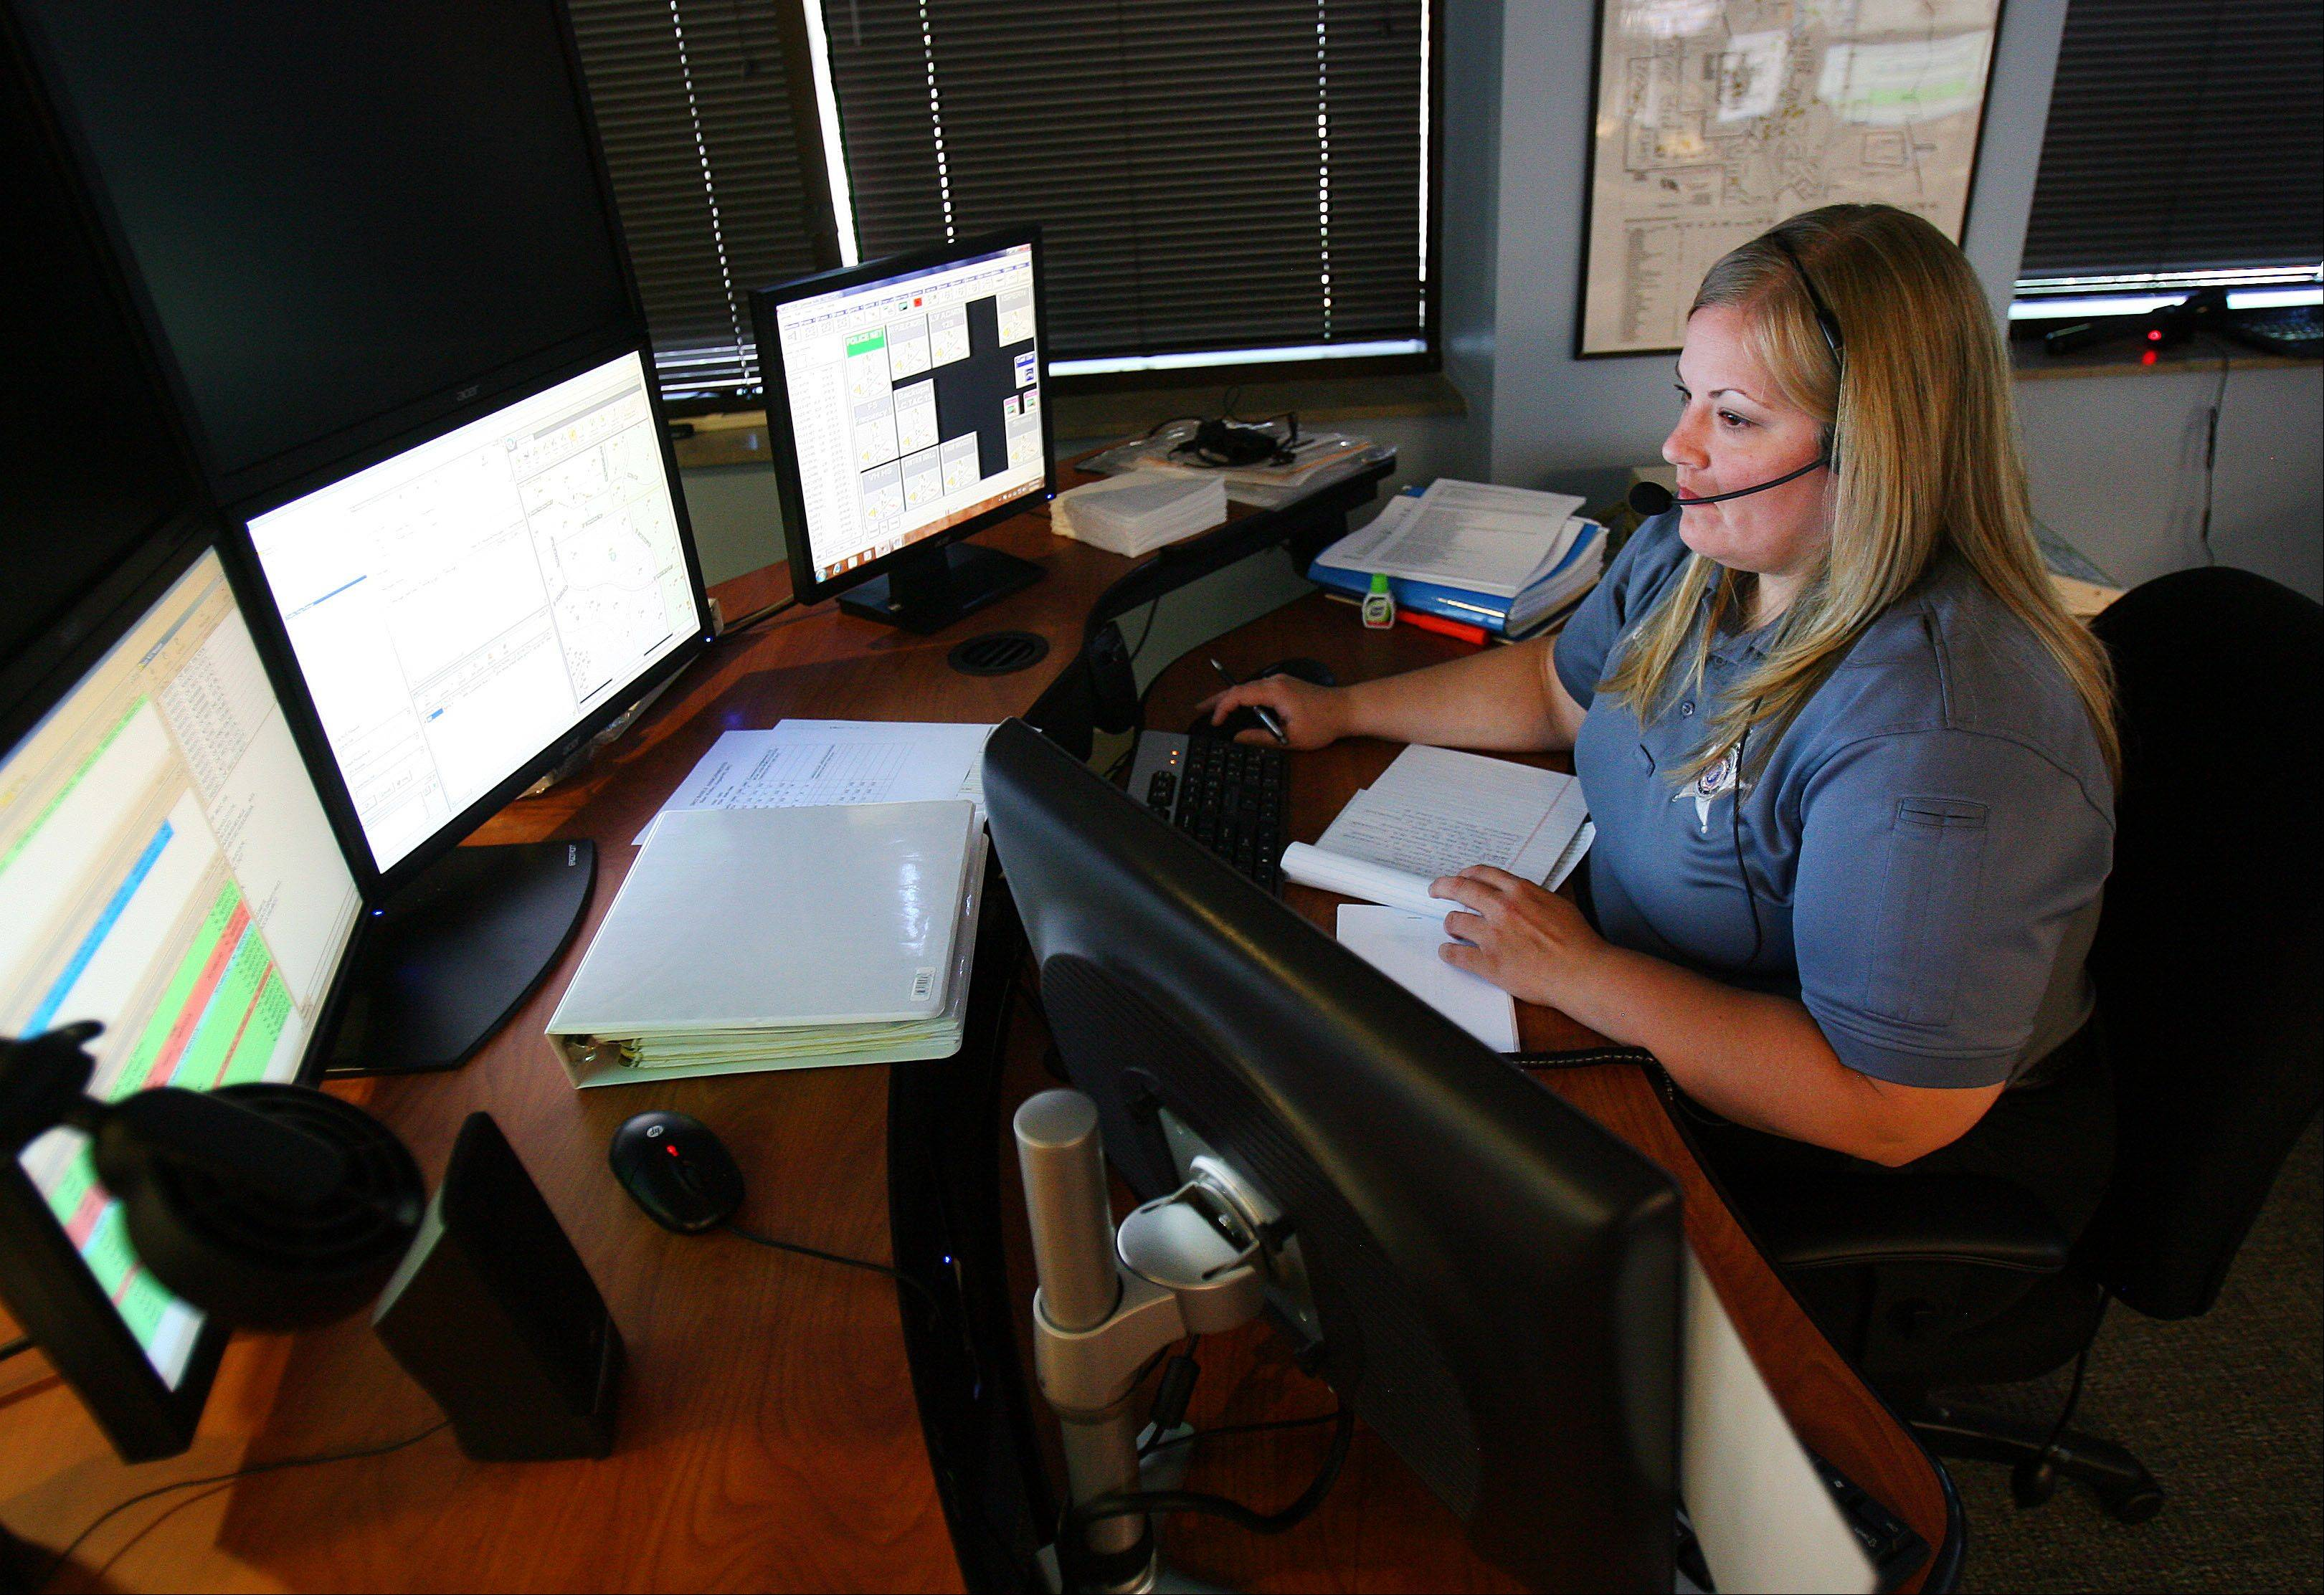 Vernon Hills Police dispatcher Sarah Silliman handles calls for the Libertyville Police Department. Vernon Hills began handling calls for Libertyville this week.